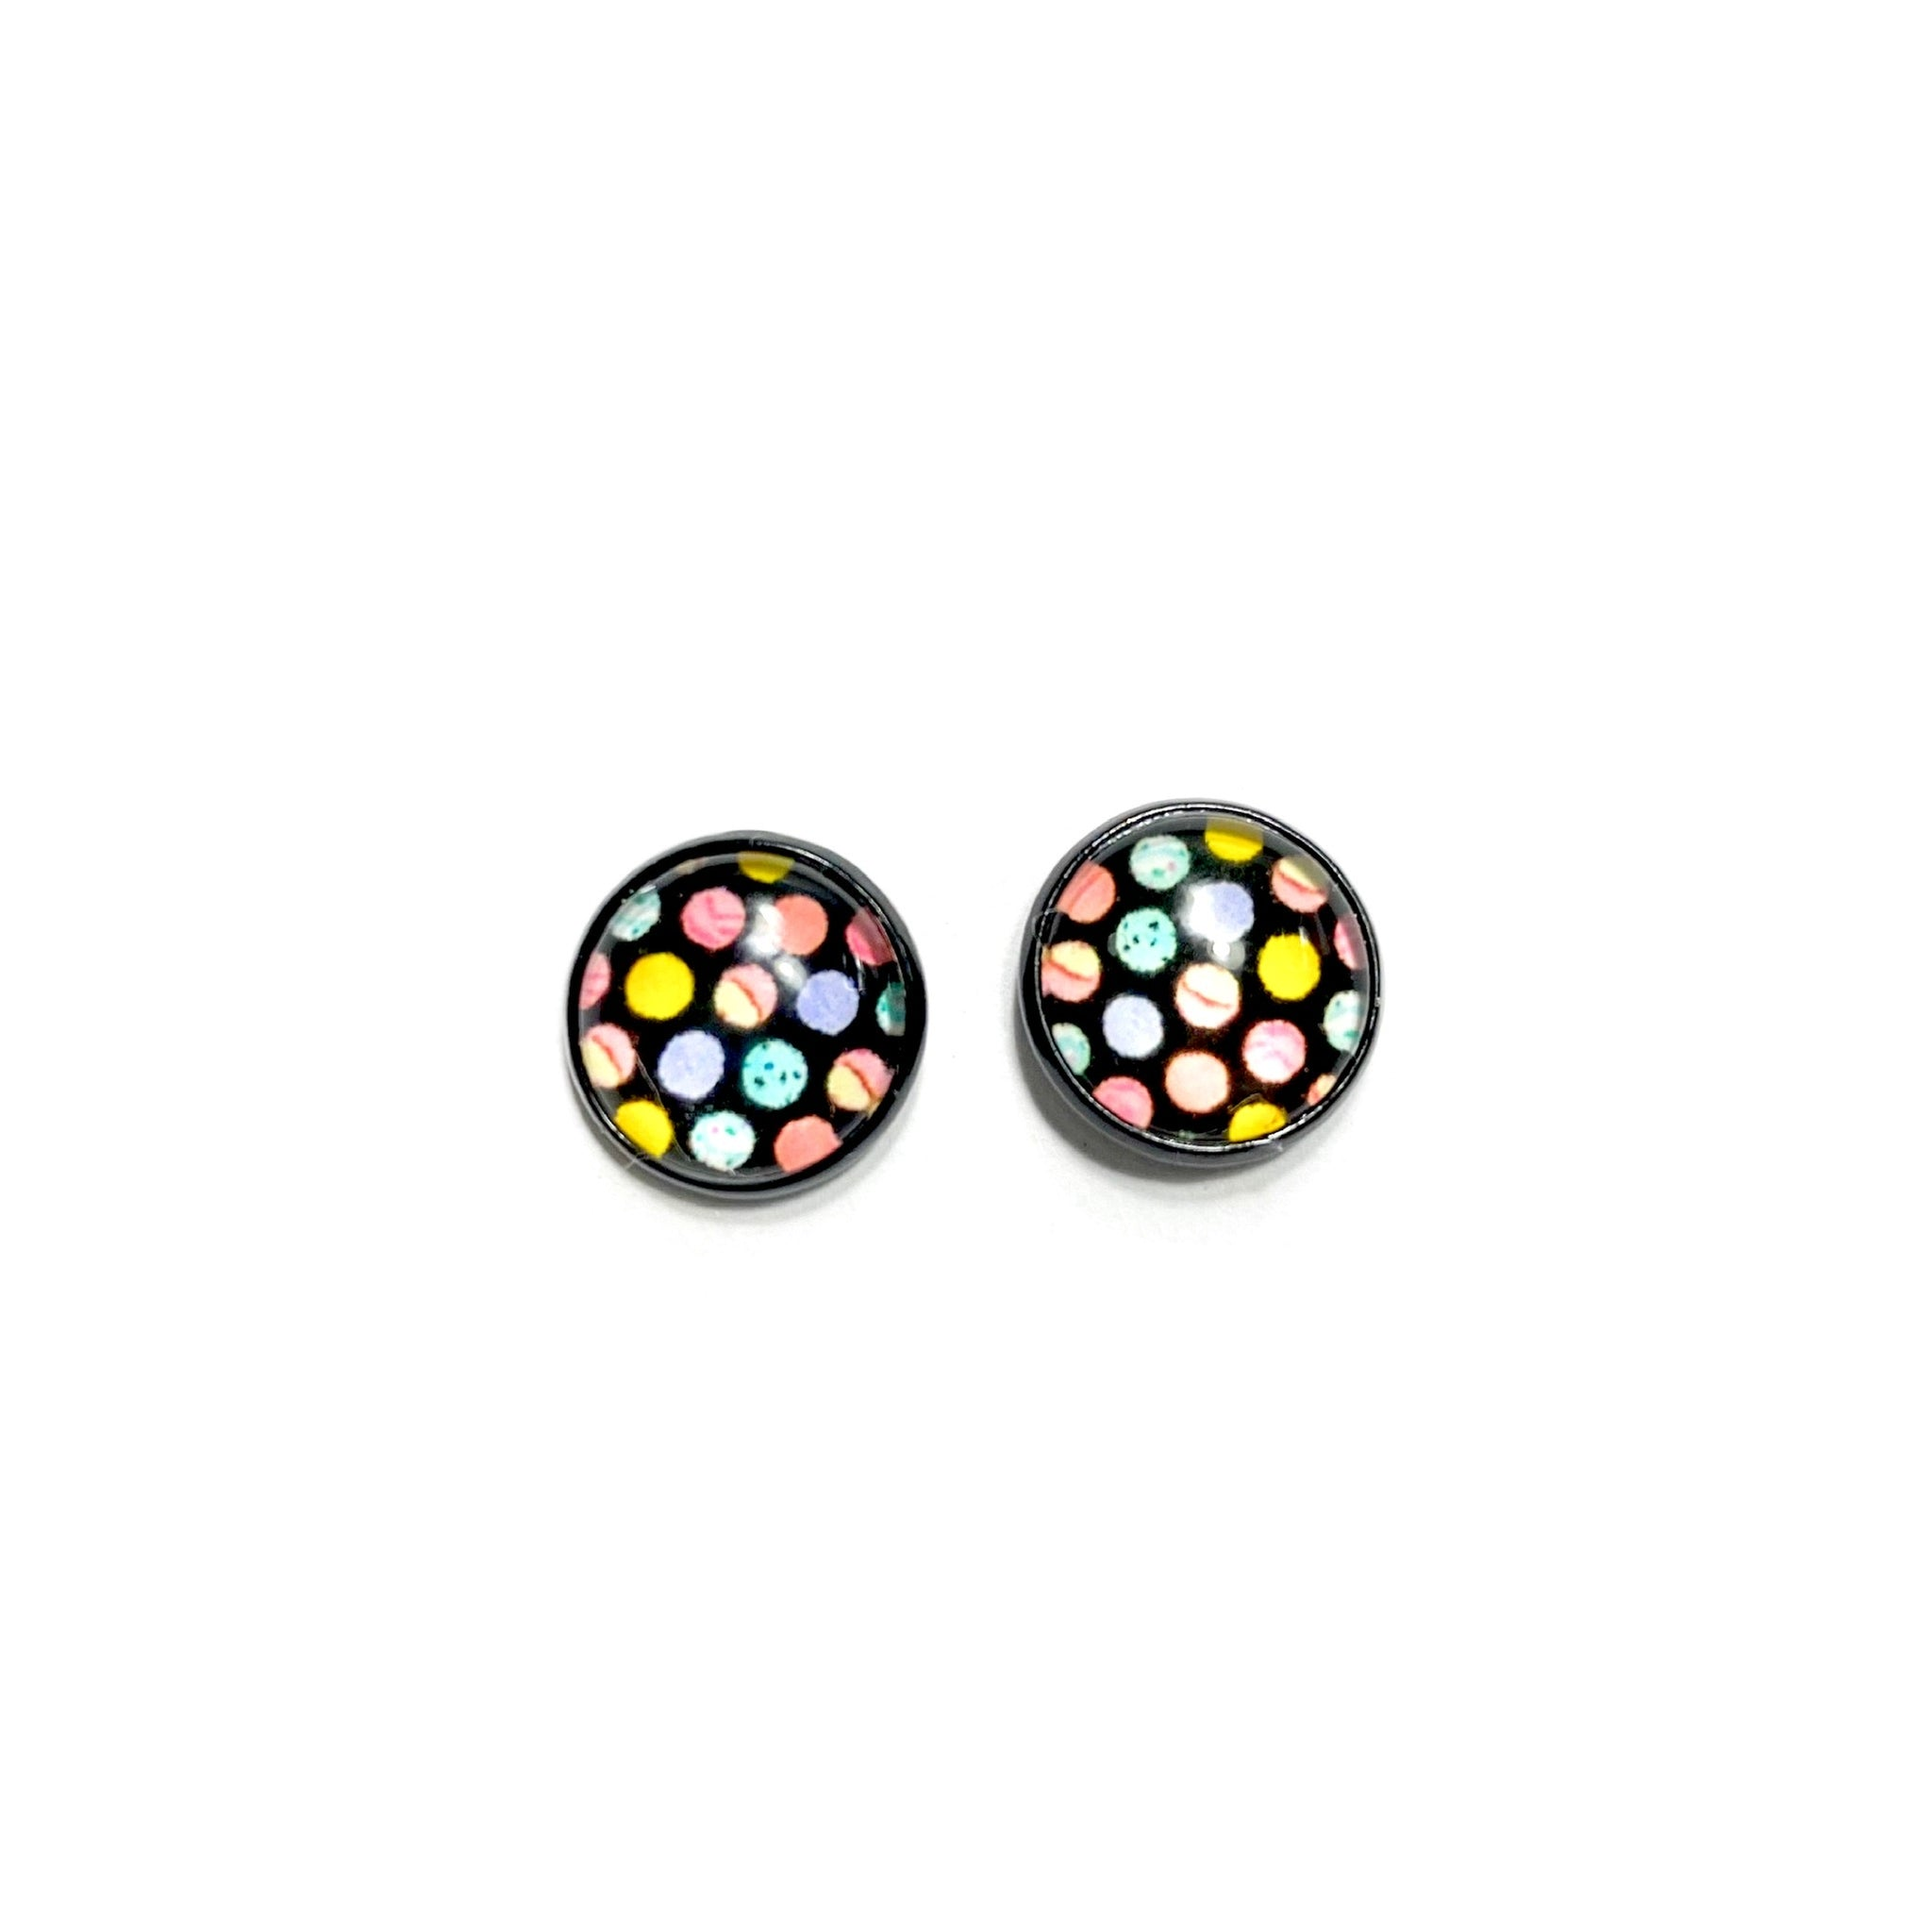 Rainbow Dots in Black - 12mm Dome Studs